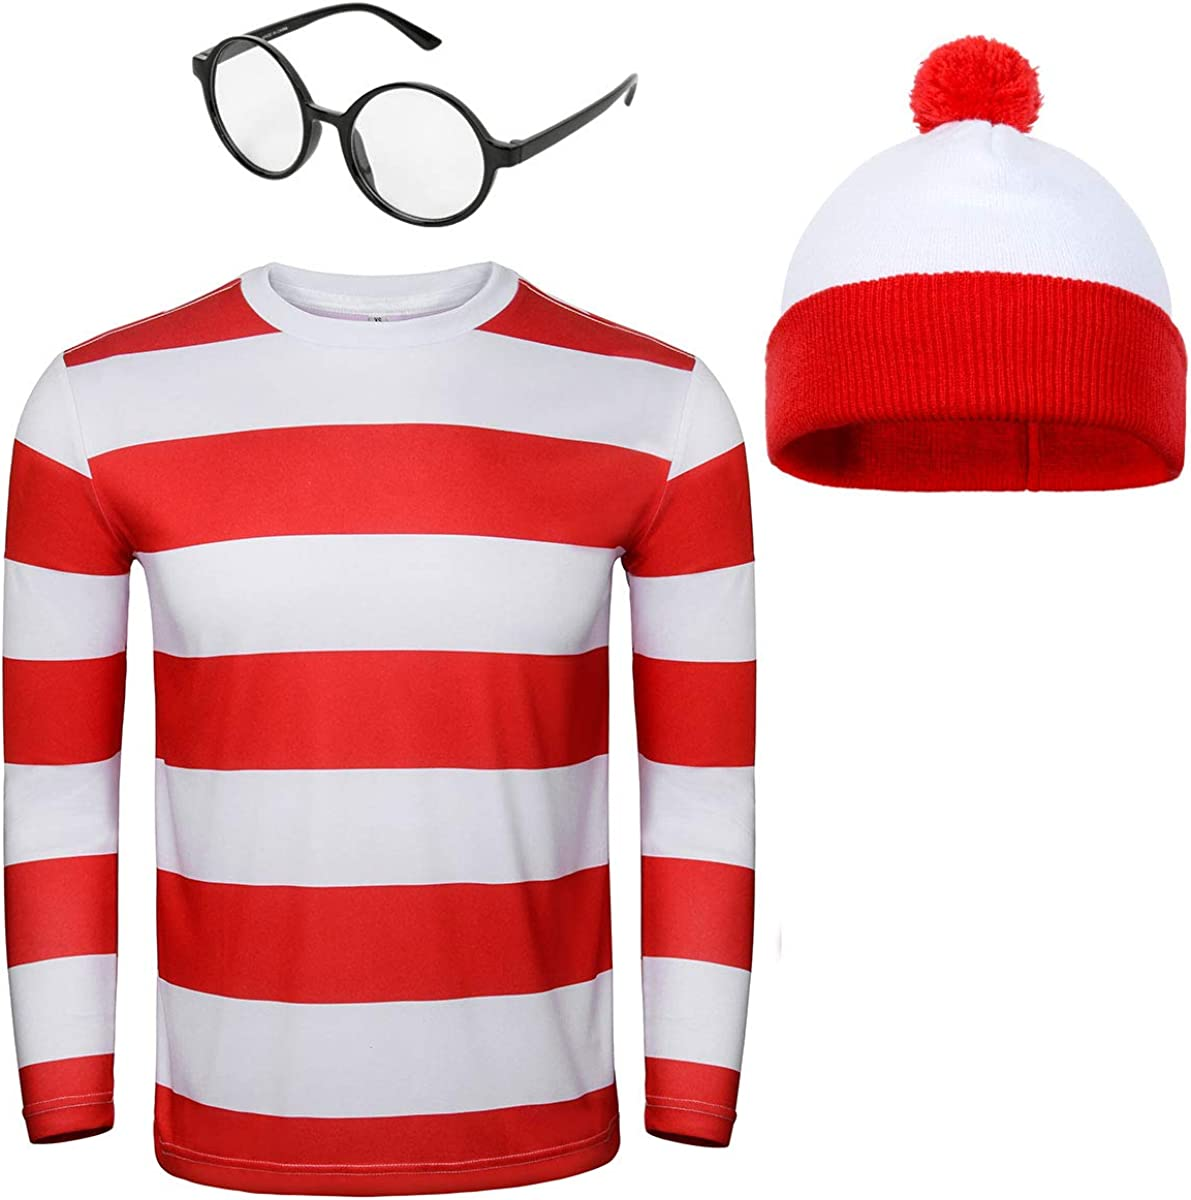 Albuquerque Mall Adult Men Red Max 43% OFF and White Striped Sui Tee Glasses Outfit Hat Shirt